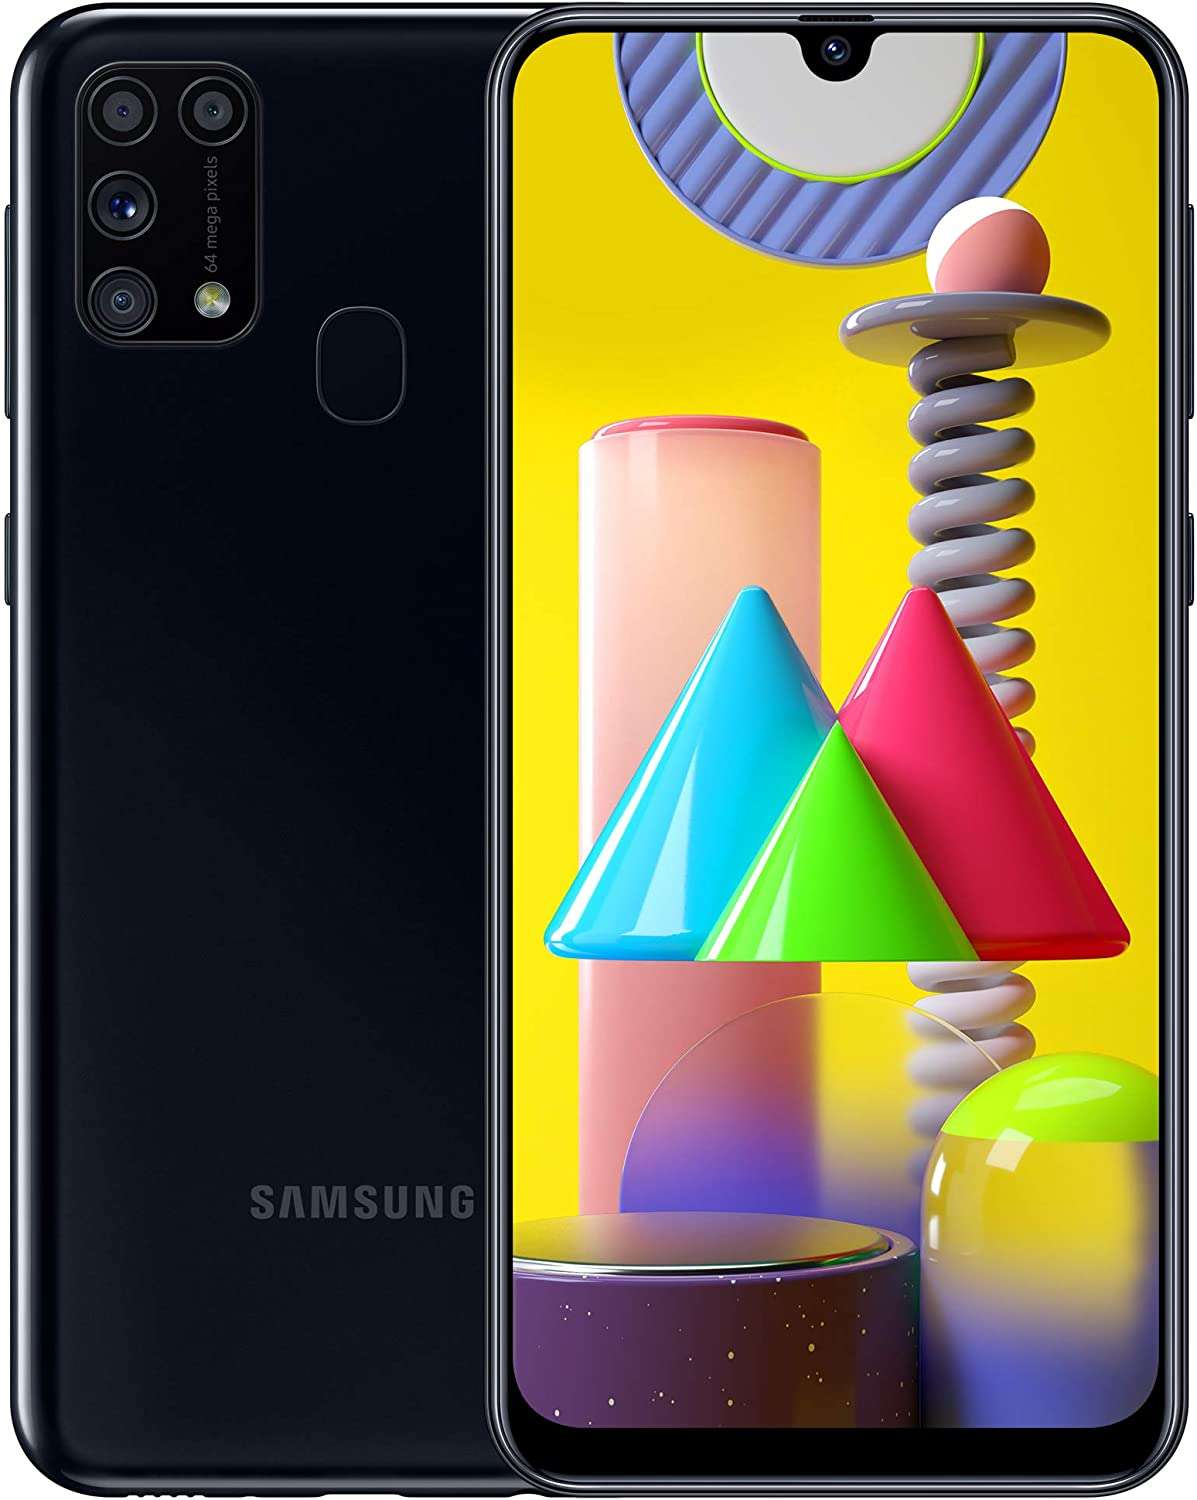 Bon plan : Le smartphone Samsung Galaxy M31 © Amazon